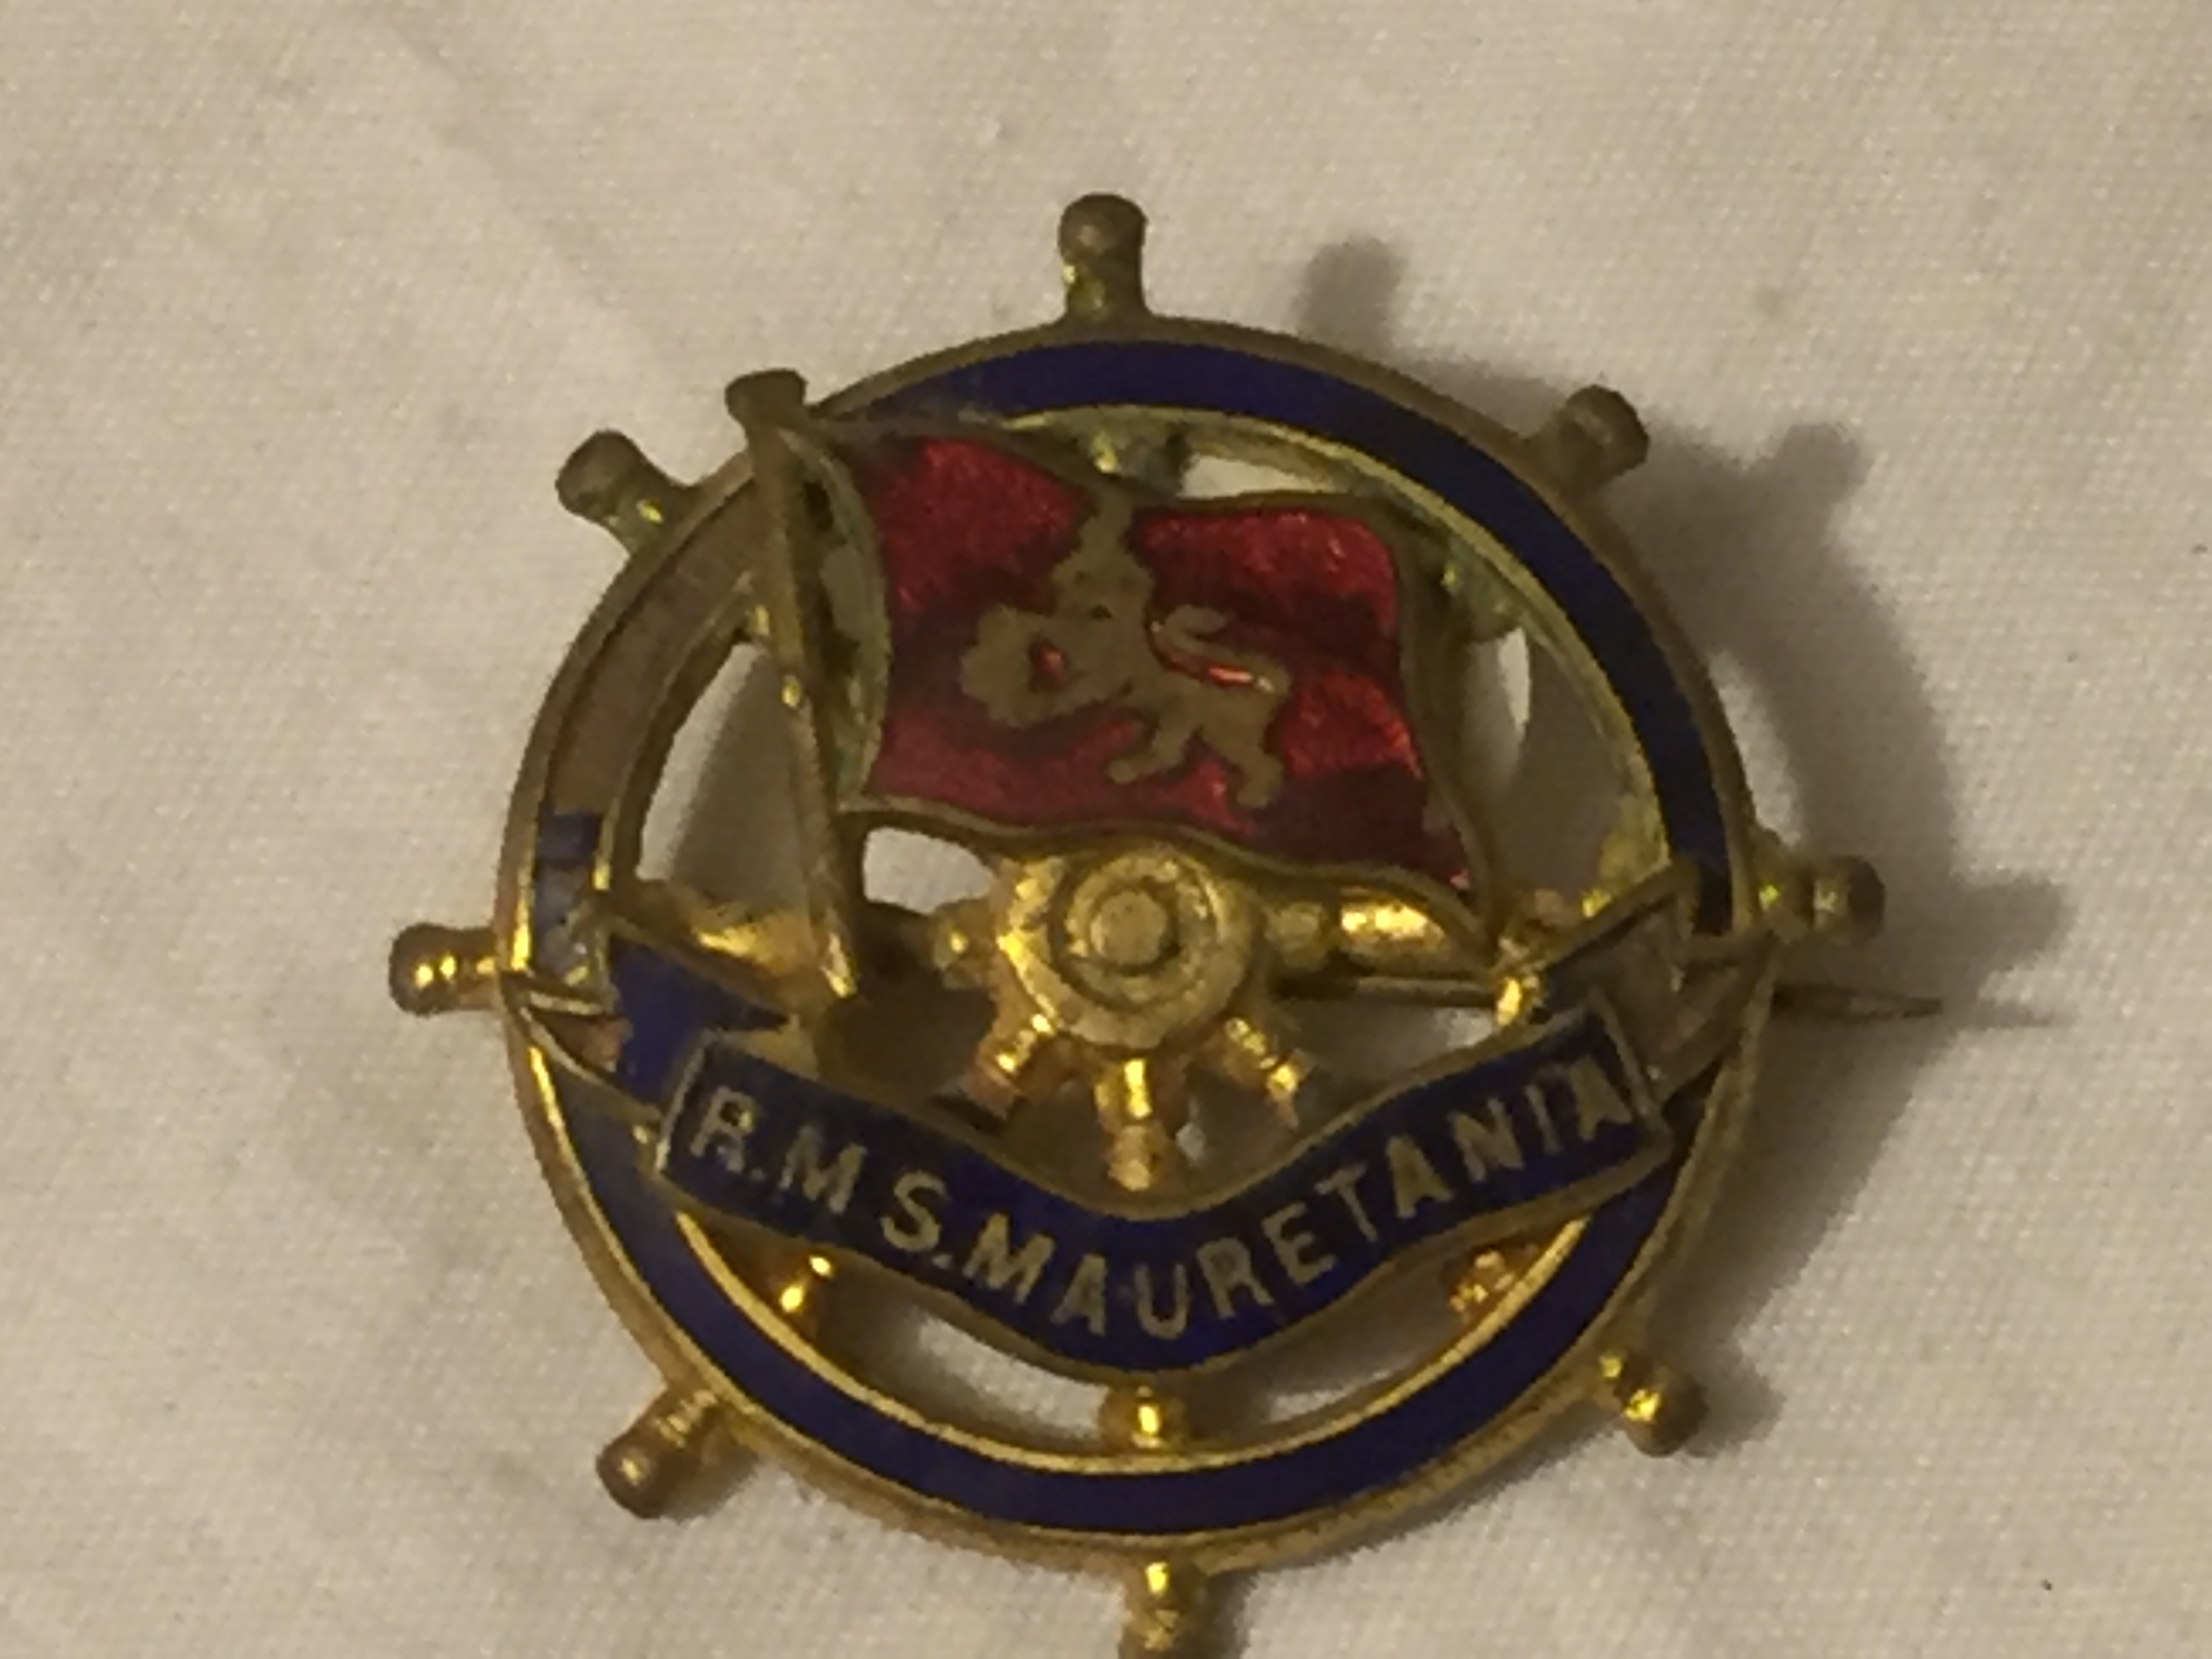 LAPEL PIN BADGE FROM THE VESSEL THE RMS MAURETANIA